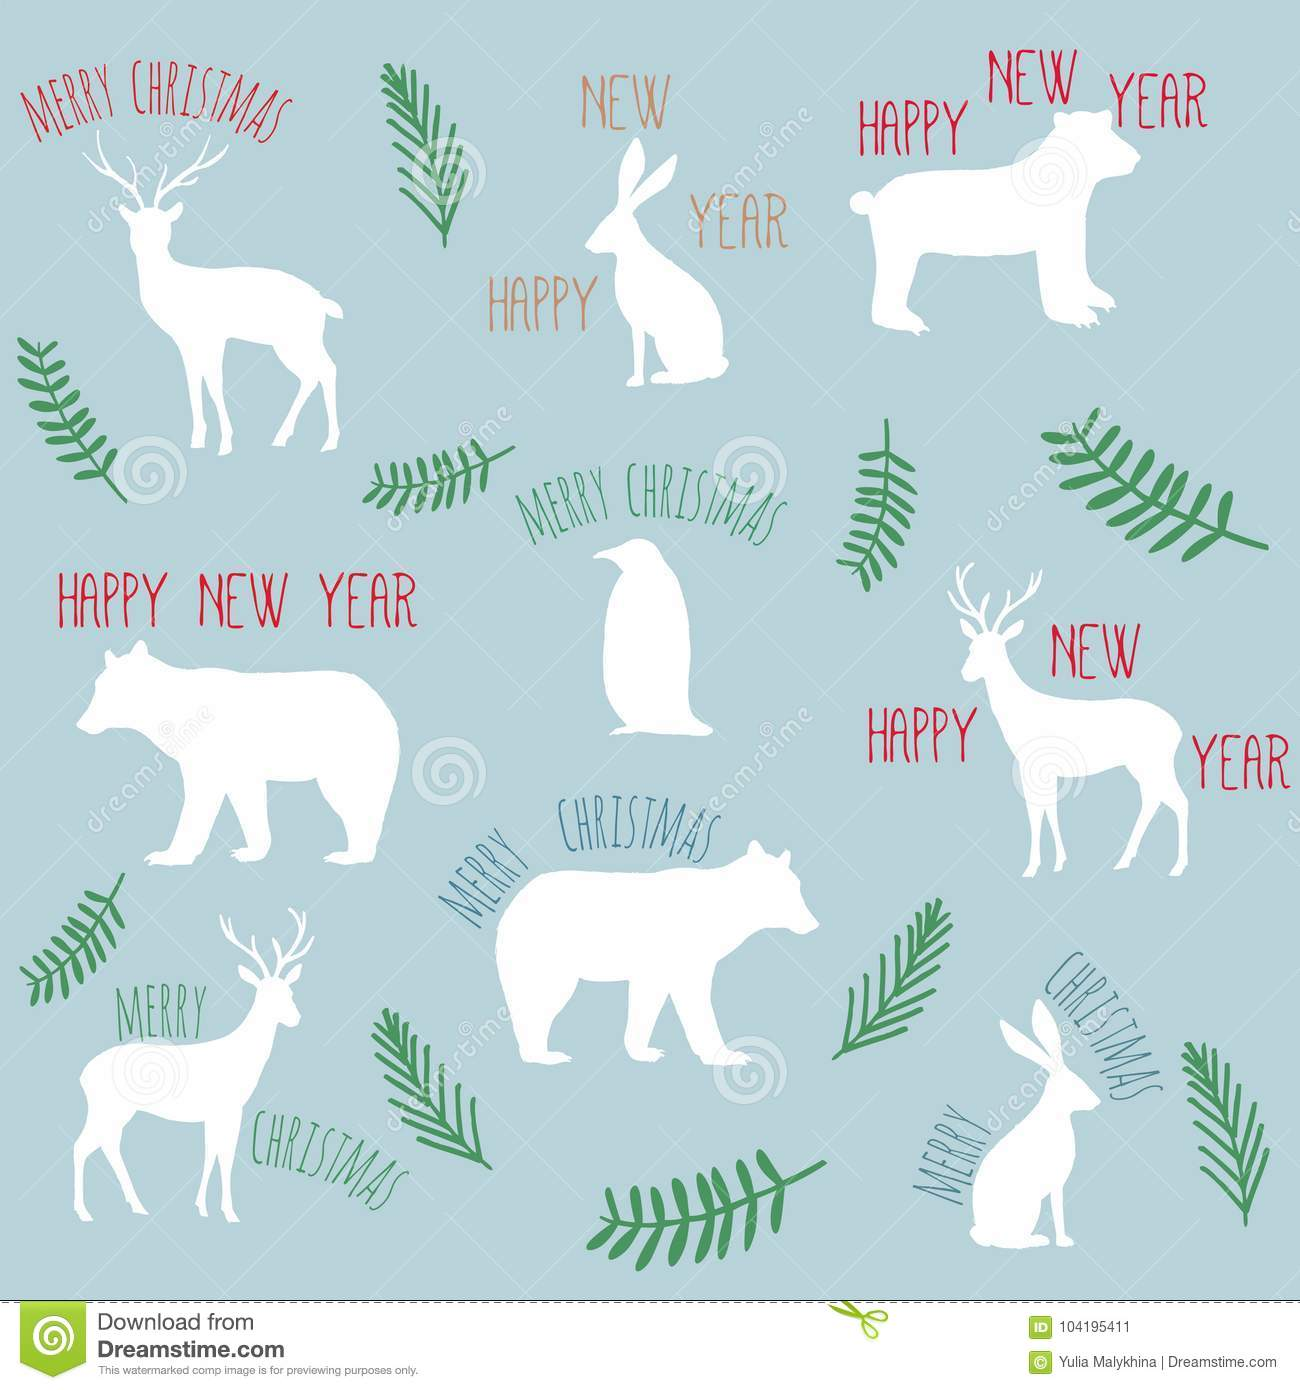 slogans merry christmas happy new year with flat animals - Christmas Slogans